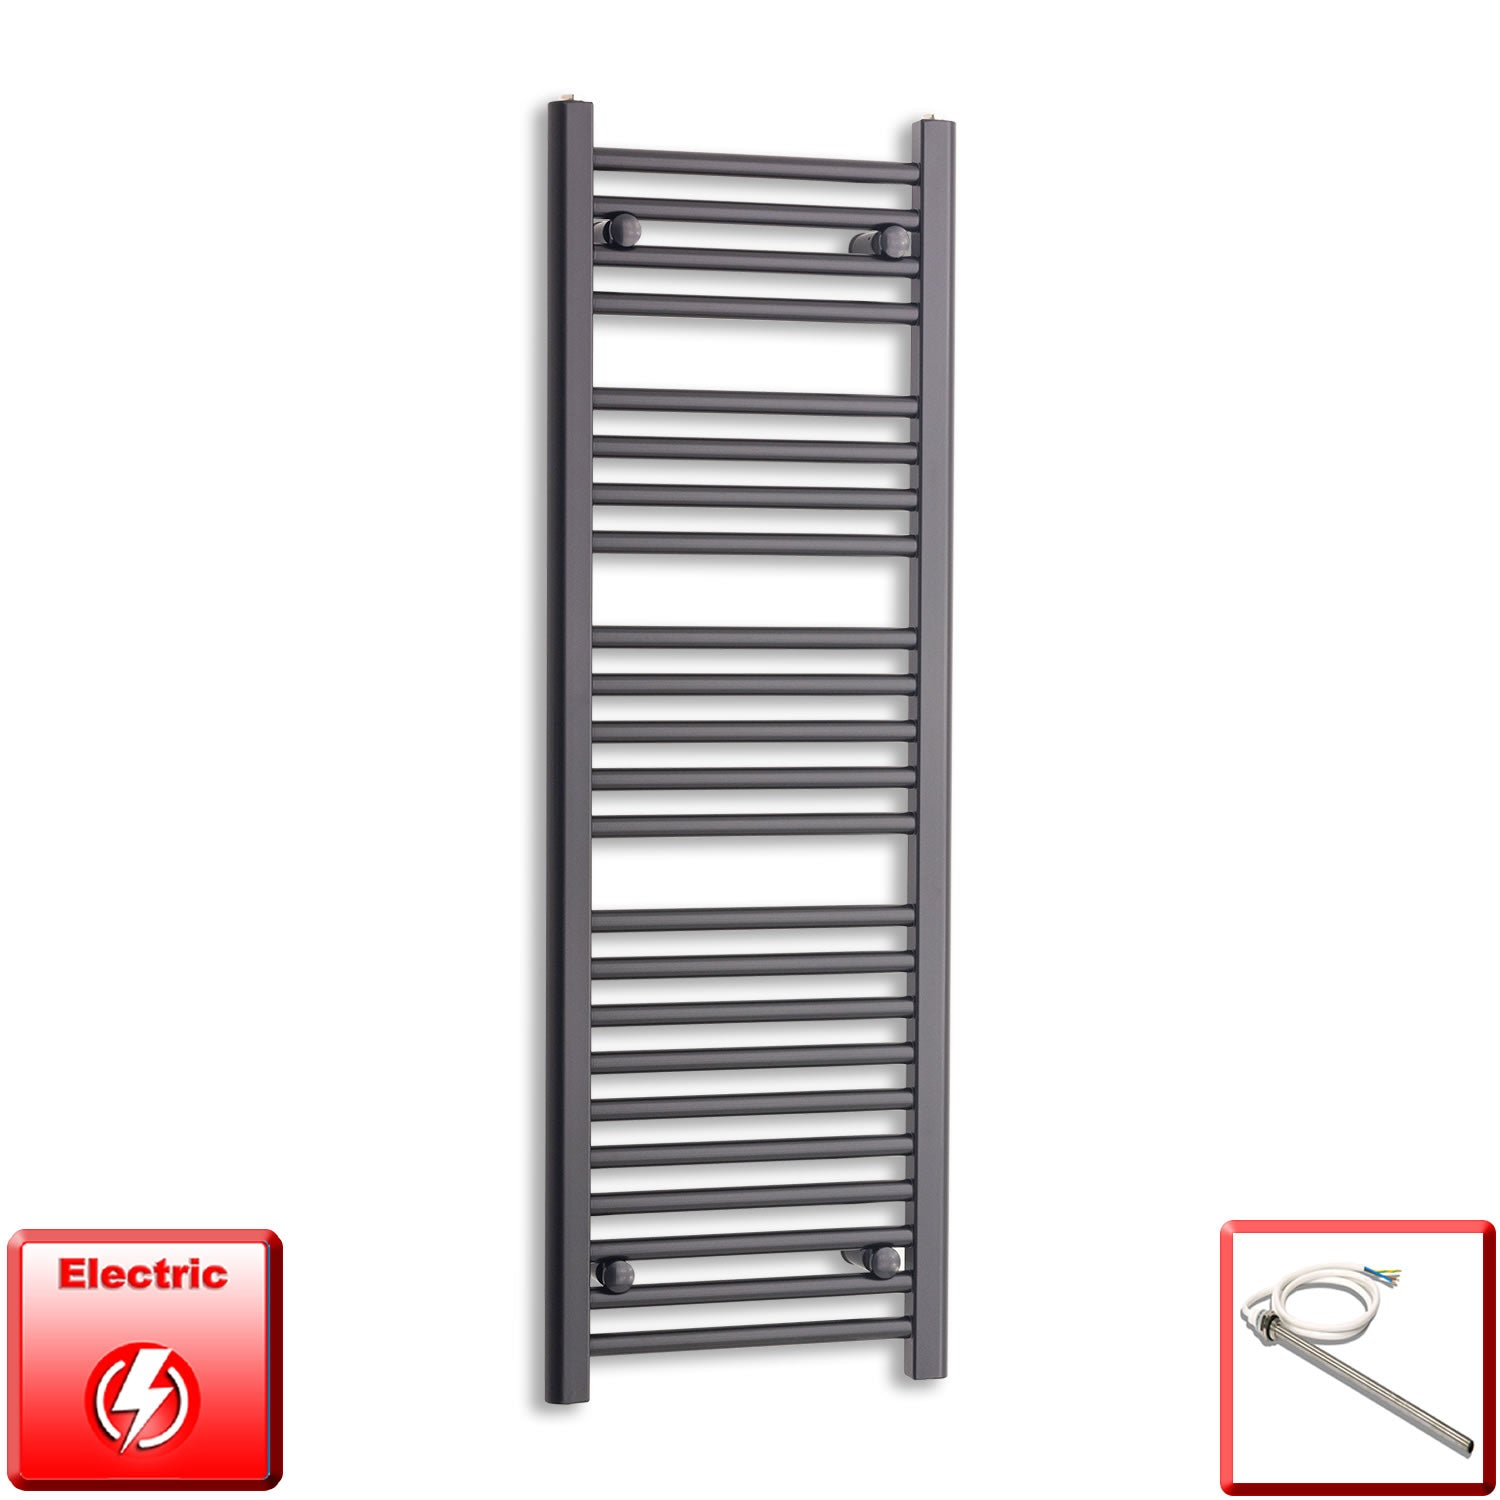 400mm Wide 1200mm High Pre-Filled Black Electric Towel Rail Radiator With Single Heat Element